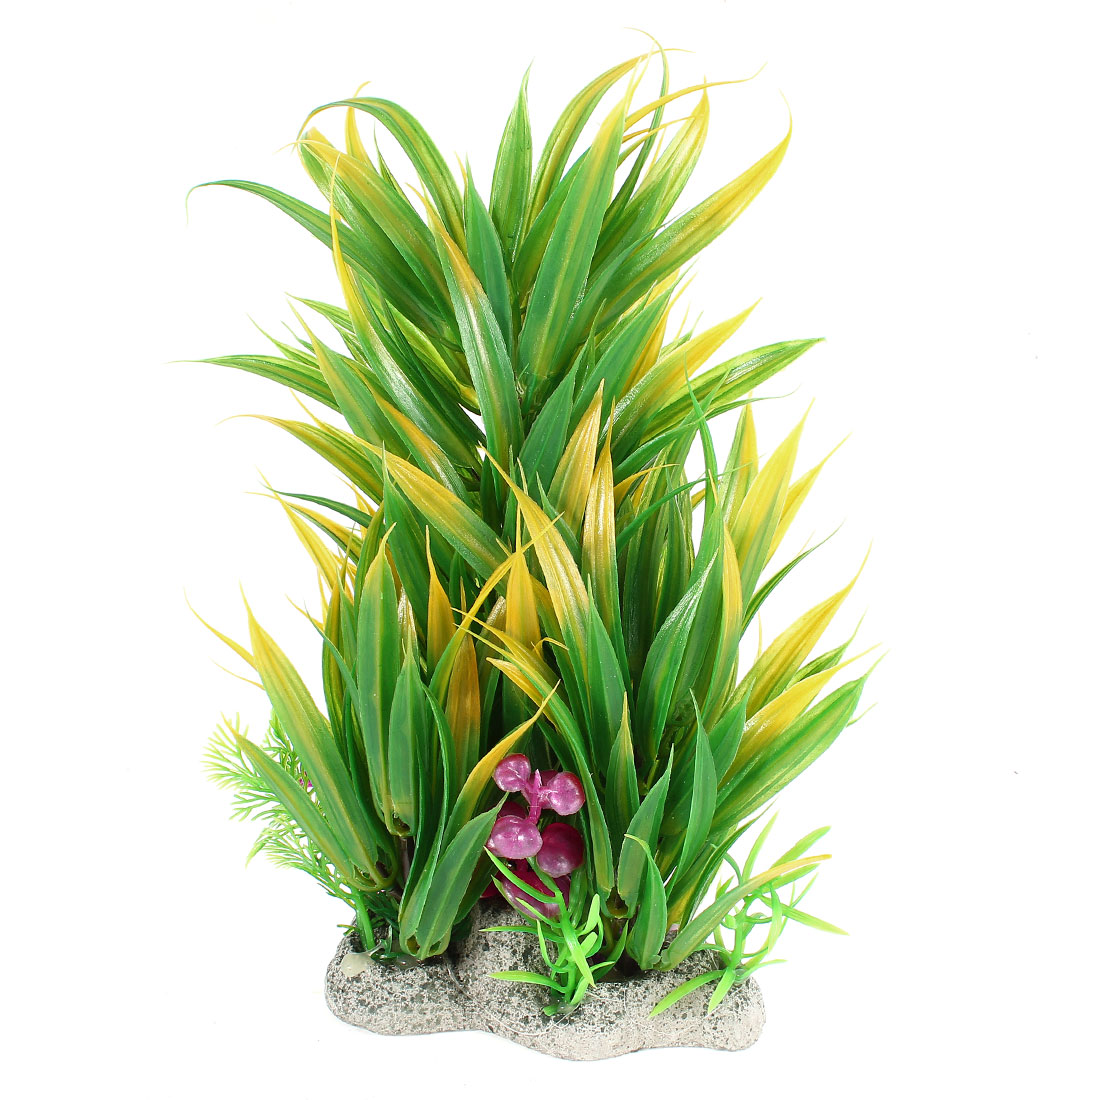 25cm High Artificial Green Yellow Leaf Underwater Plant Glass Ornament for Aquarium Tank Decor